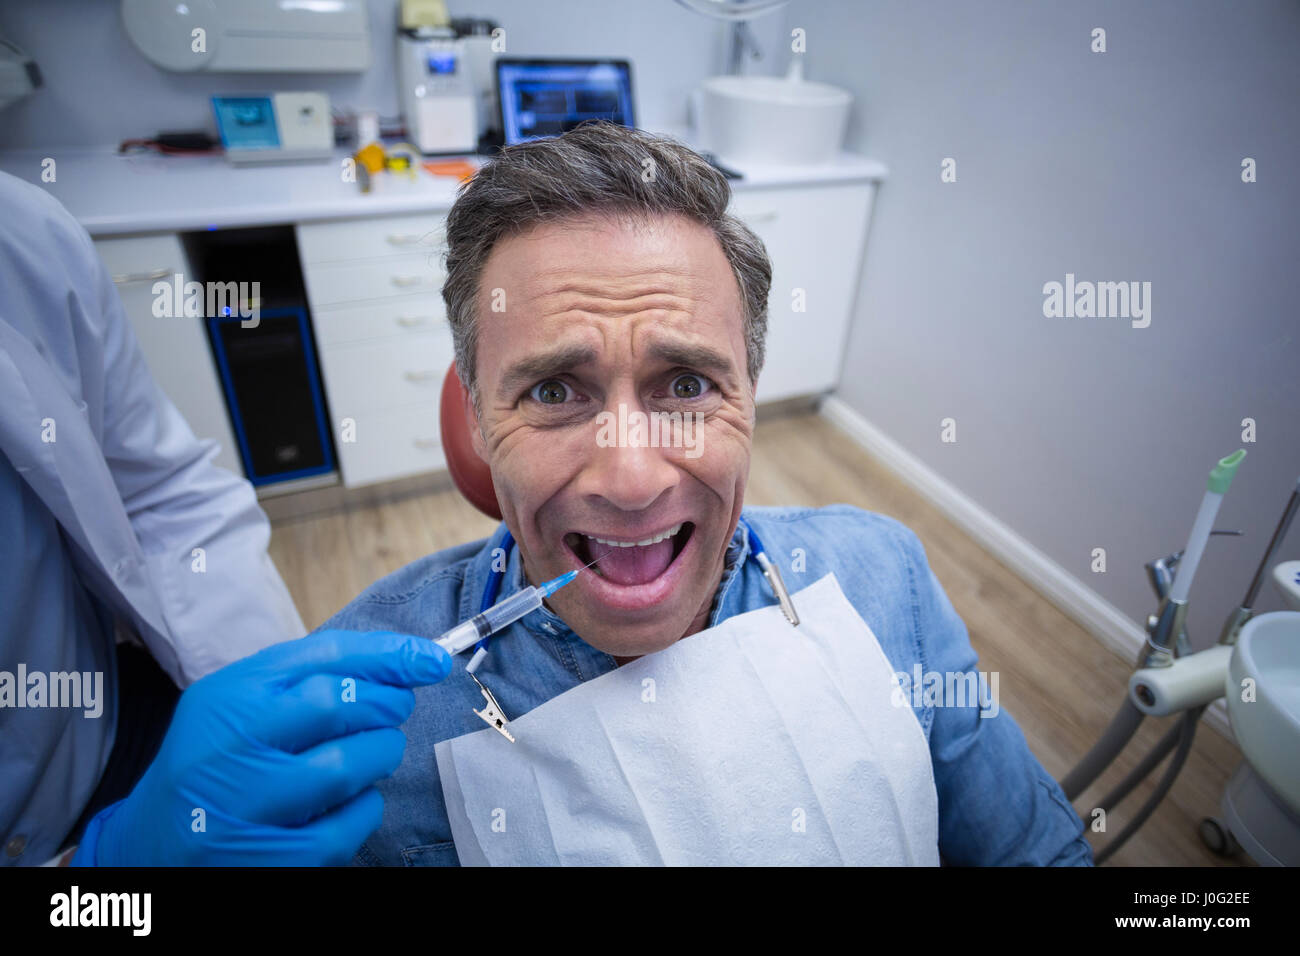 Dentist Injecting Anesthetics In Scared Male Patient Mouth At Dental Clinic